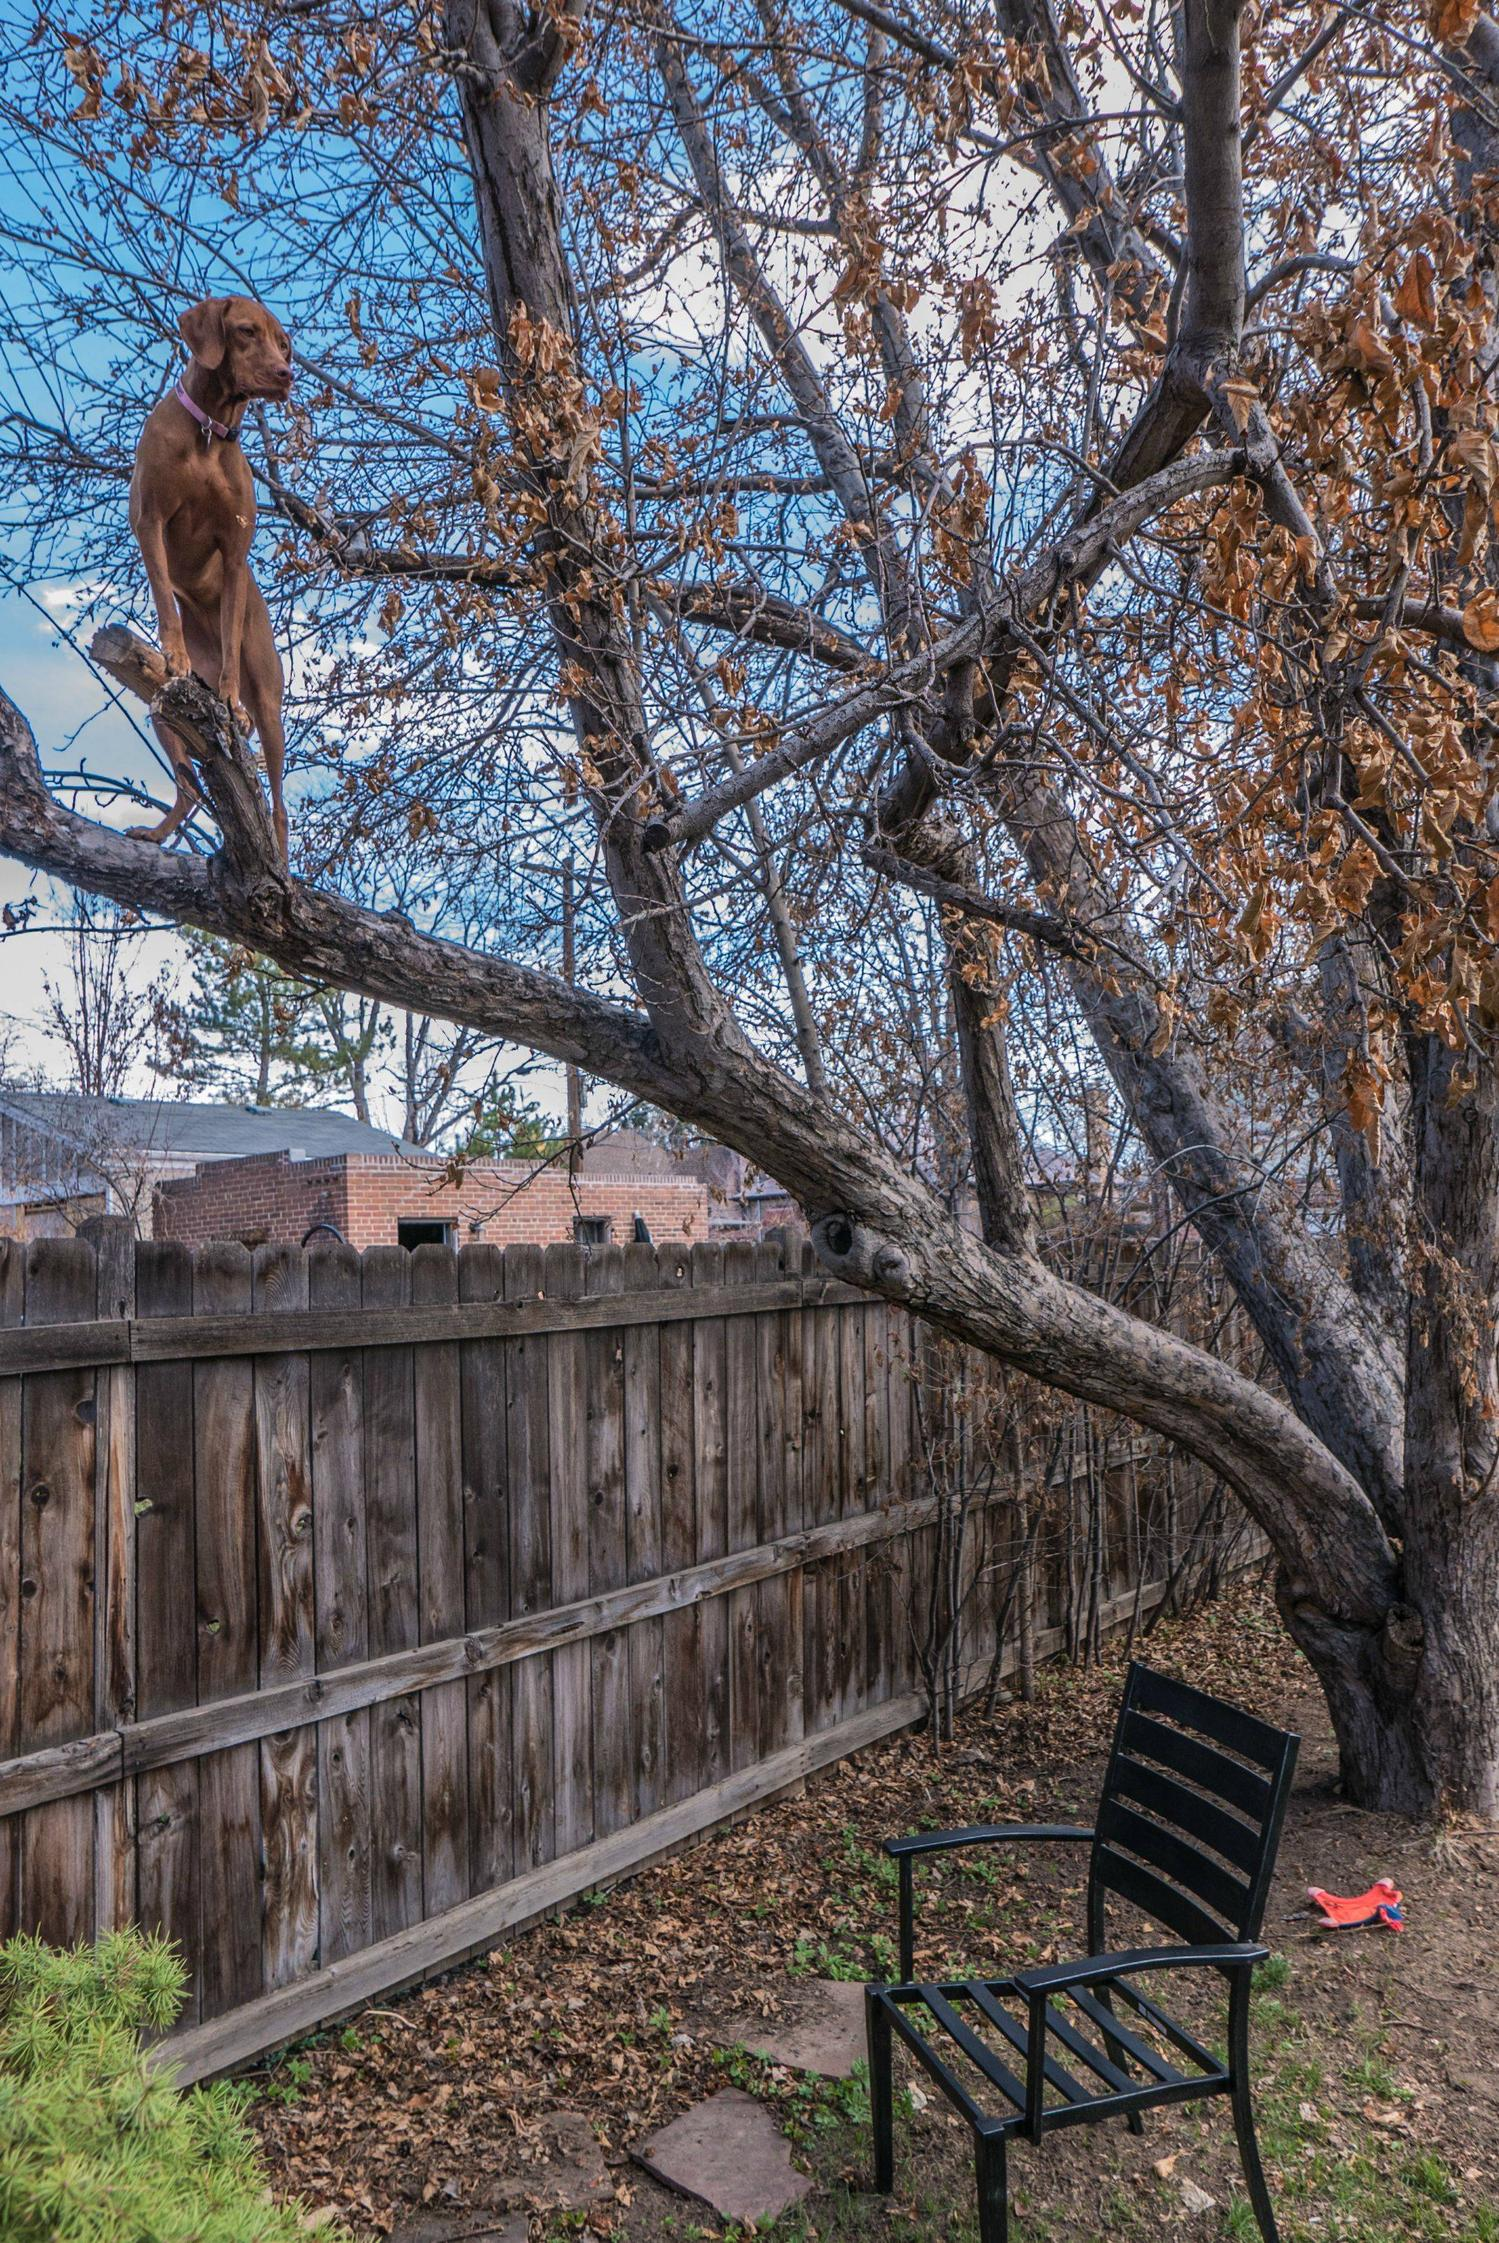 Our dog now climbs trees, no squirrel is safe.